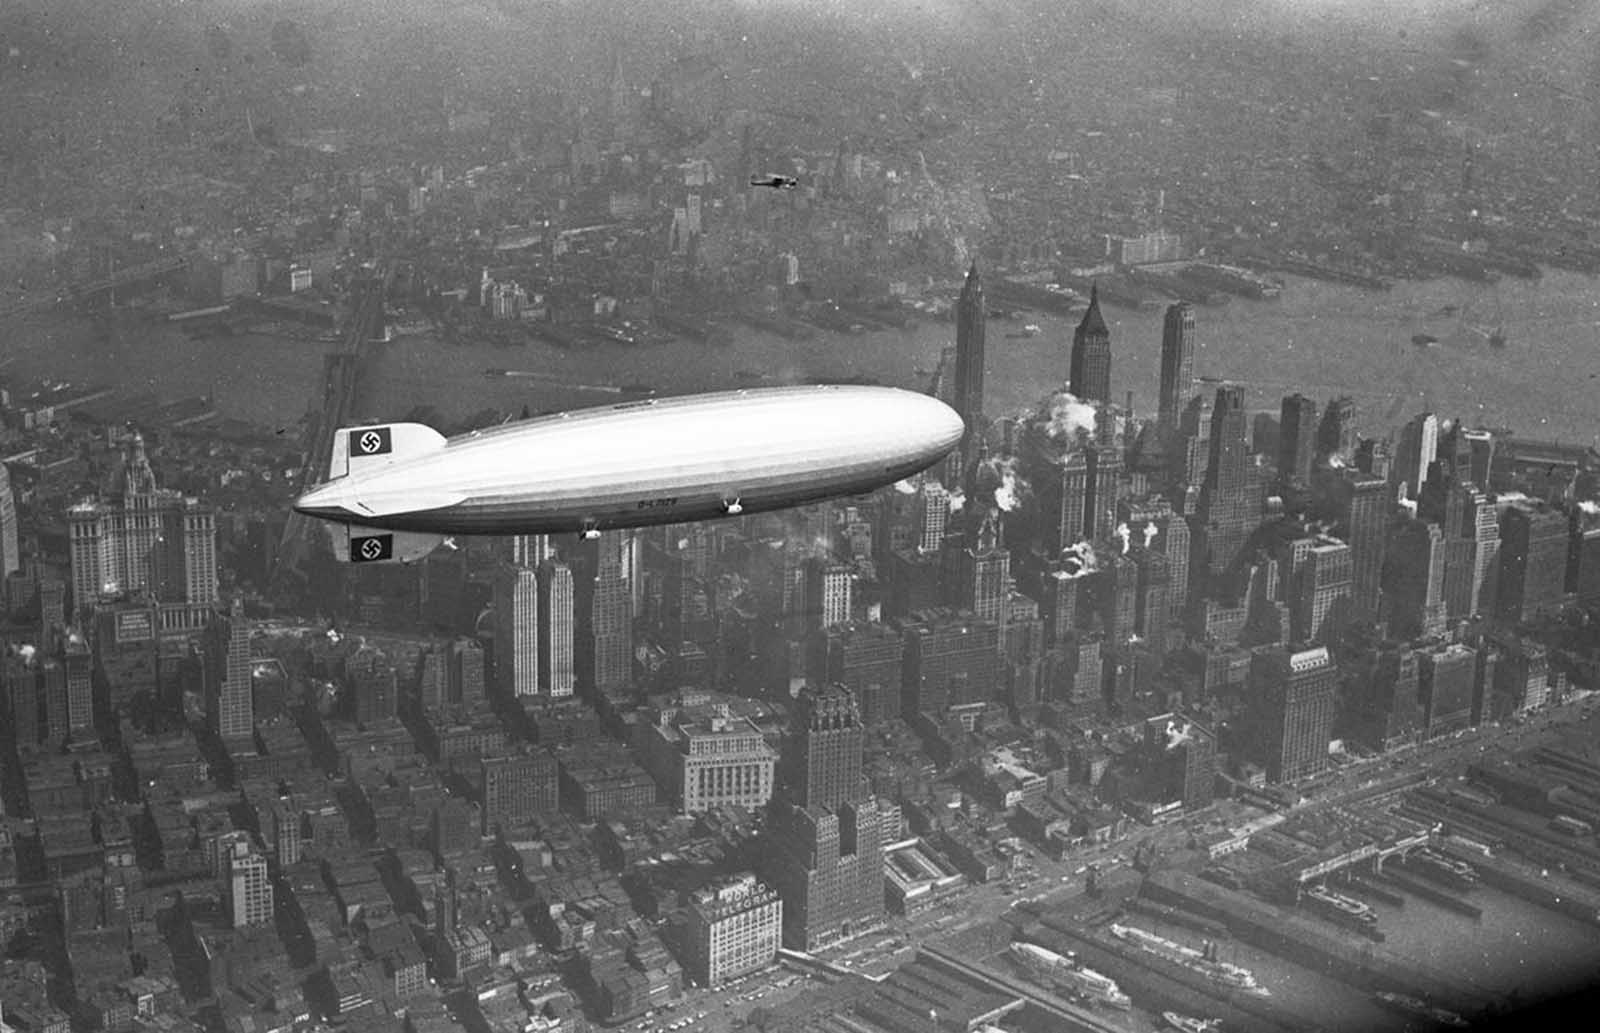 The Hindenburg flies over Manhattan, on May 6, 1937. A few hours later, the ship burst into flames in an attempt to land at Lakehurst, New Jersey.